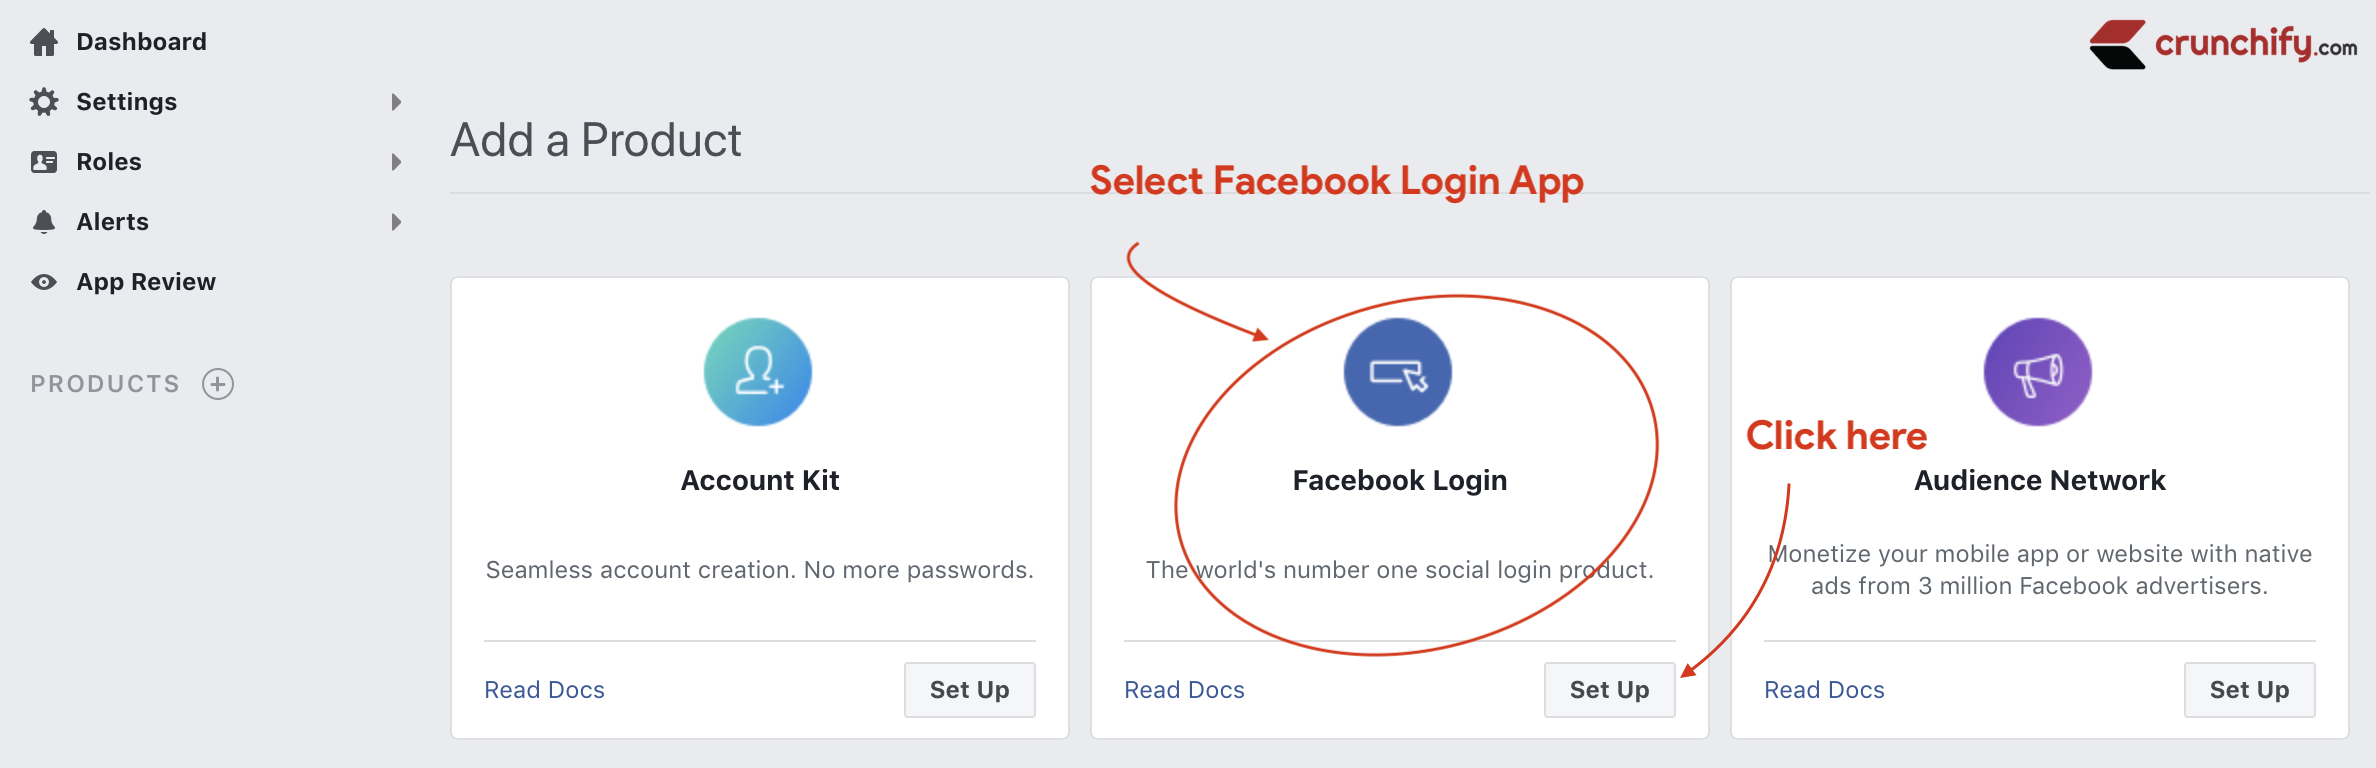 Create Facebook Login Product - create Sign Up Application